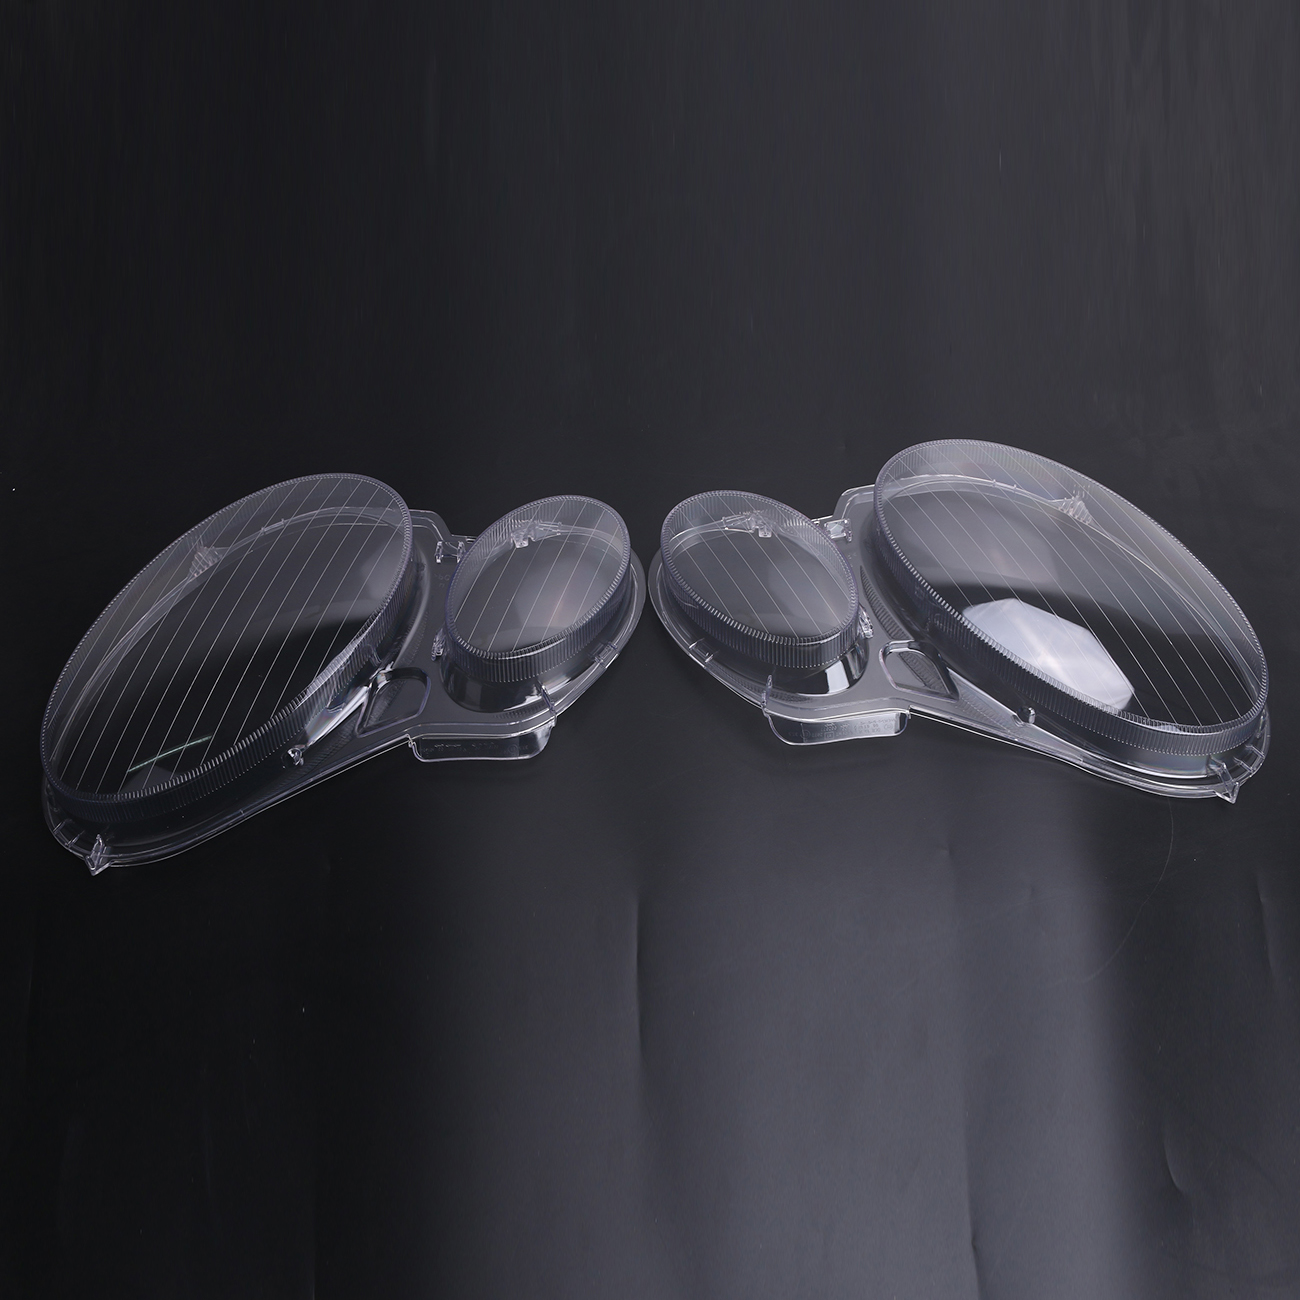 For Mercedes W211 Car Headlight Lens Front HeadLamp Cover Benz E Class E350 E320 E500 2006 2007 2008 PD554